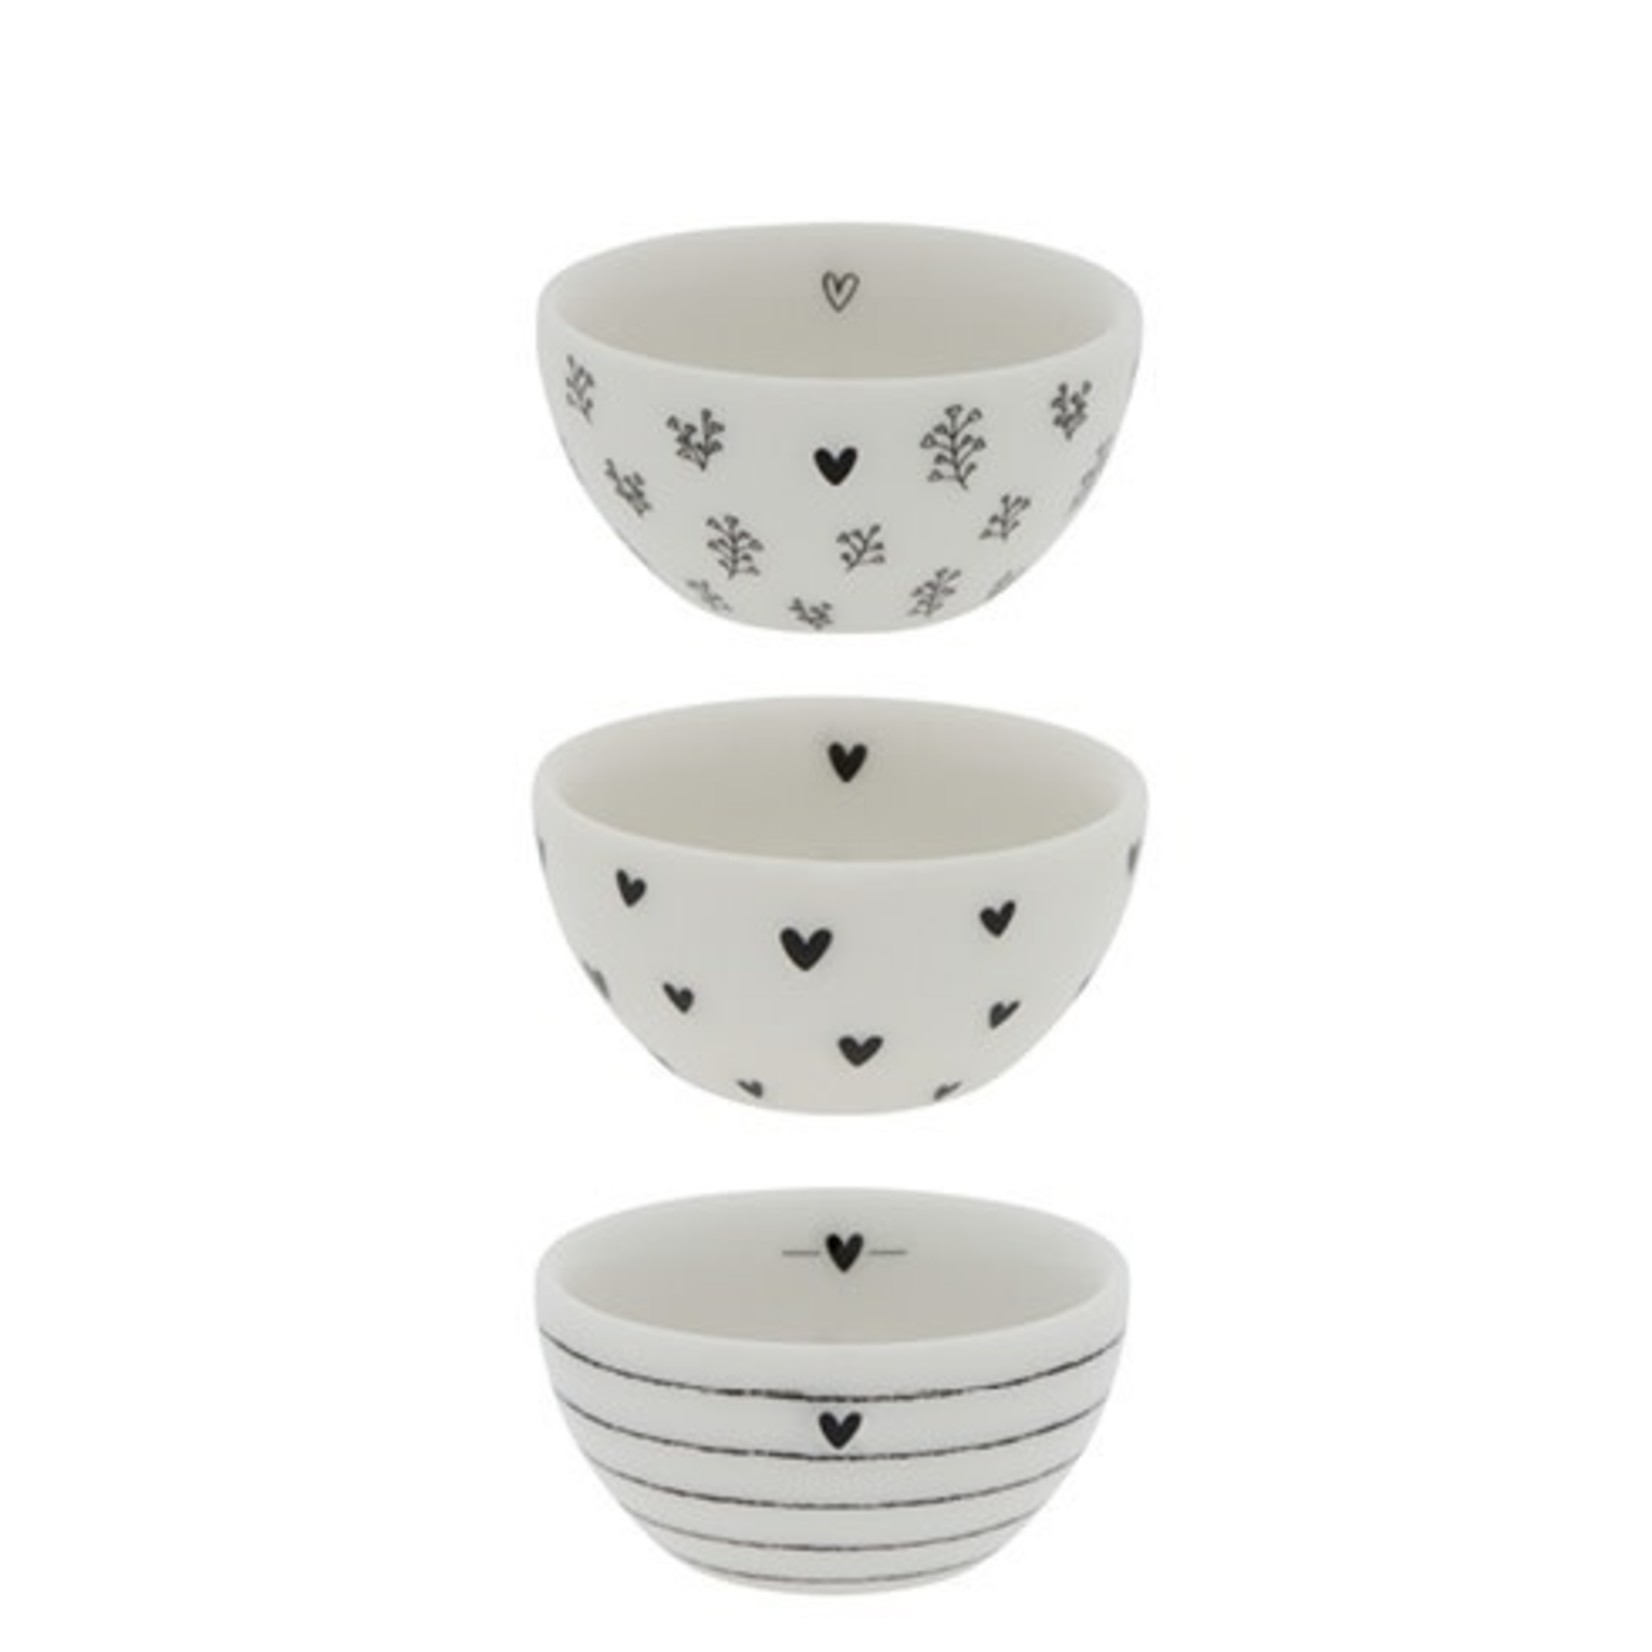 Bastion Collections Bowl XS Stripes white black 6x3 cm (3e van 3)